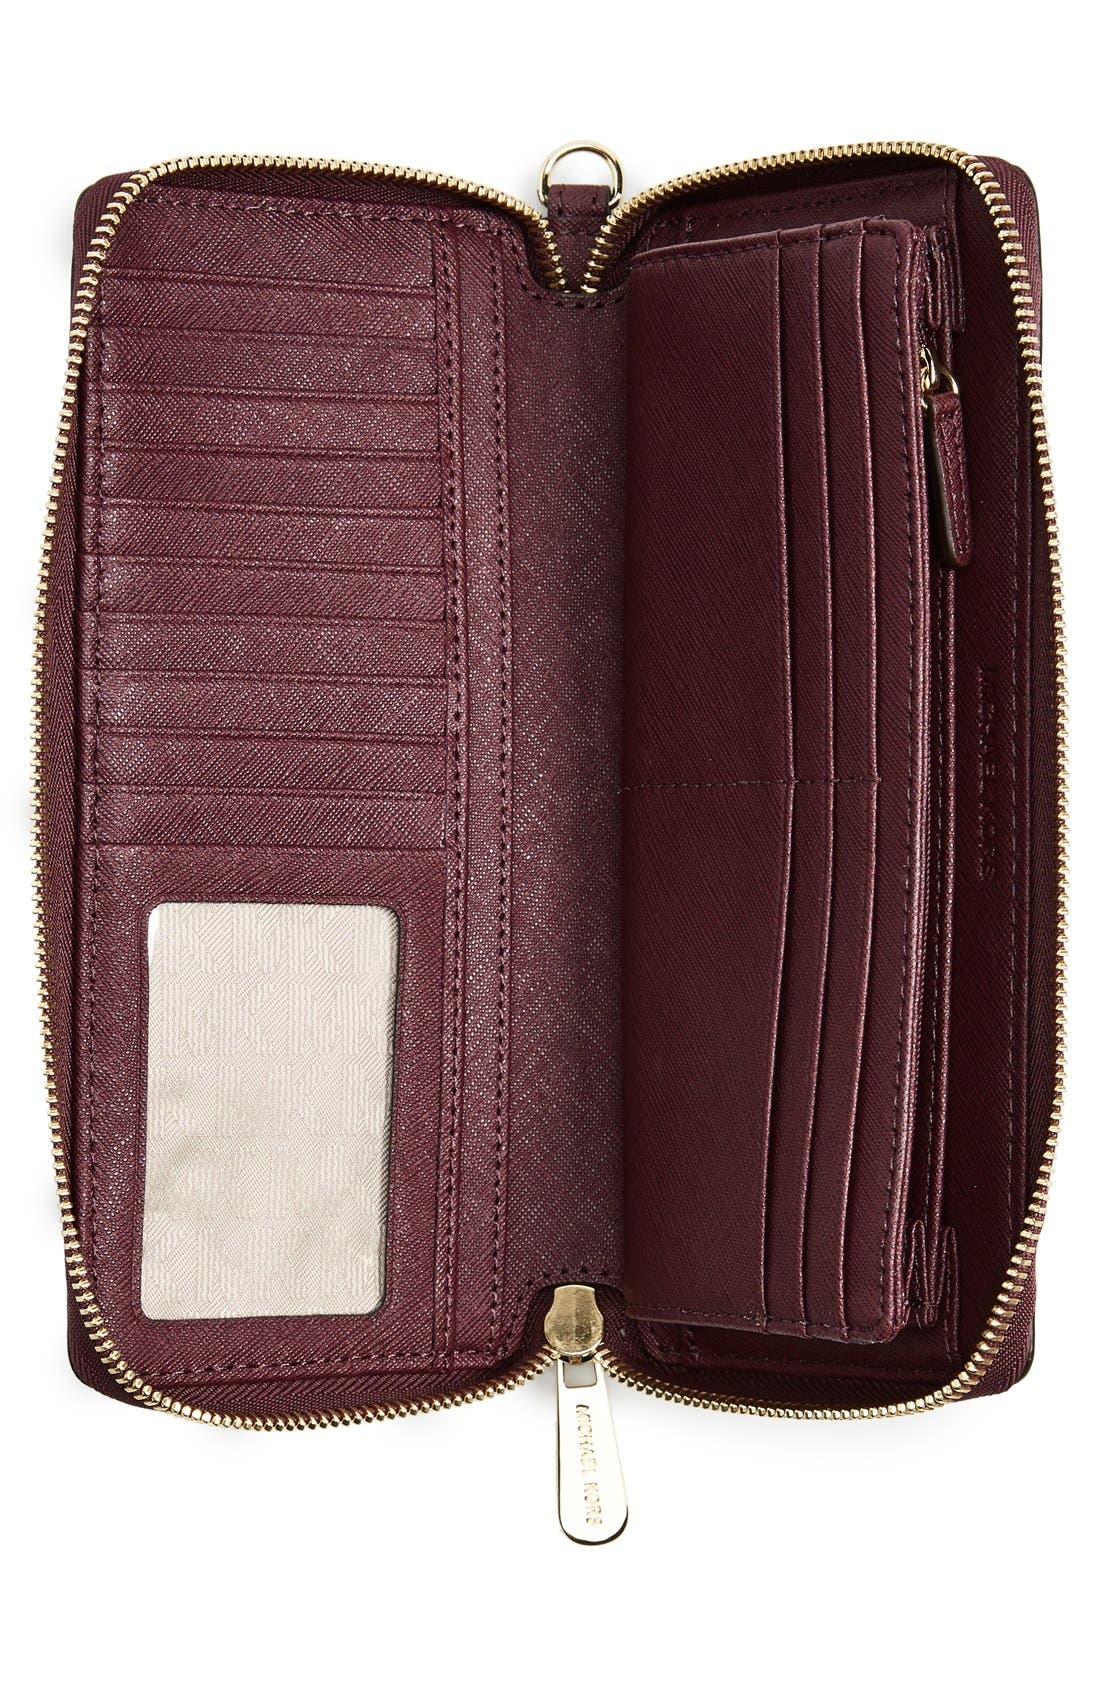 'Jet Set' Leather Travel Wallet,                             Alternate thumbnail 23, color,